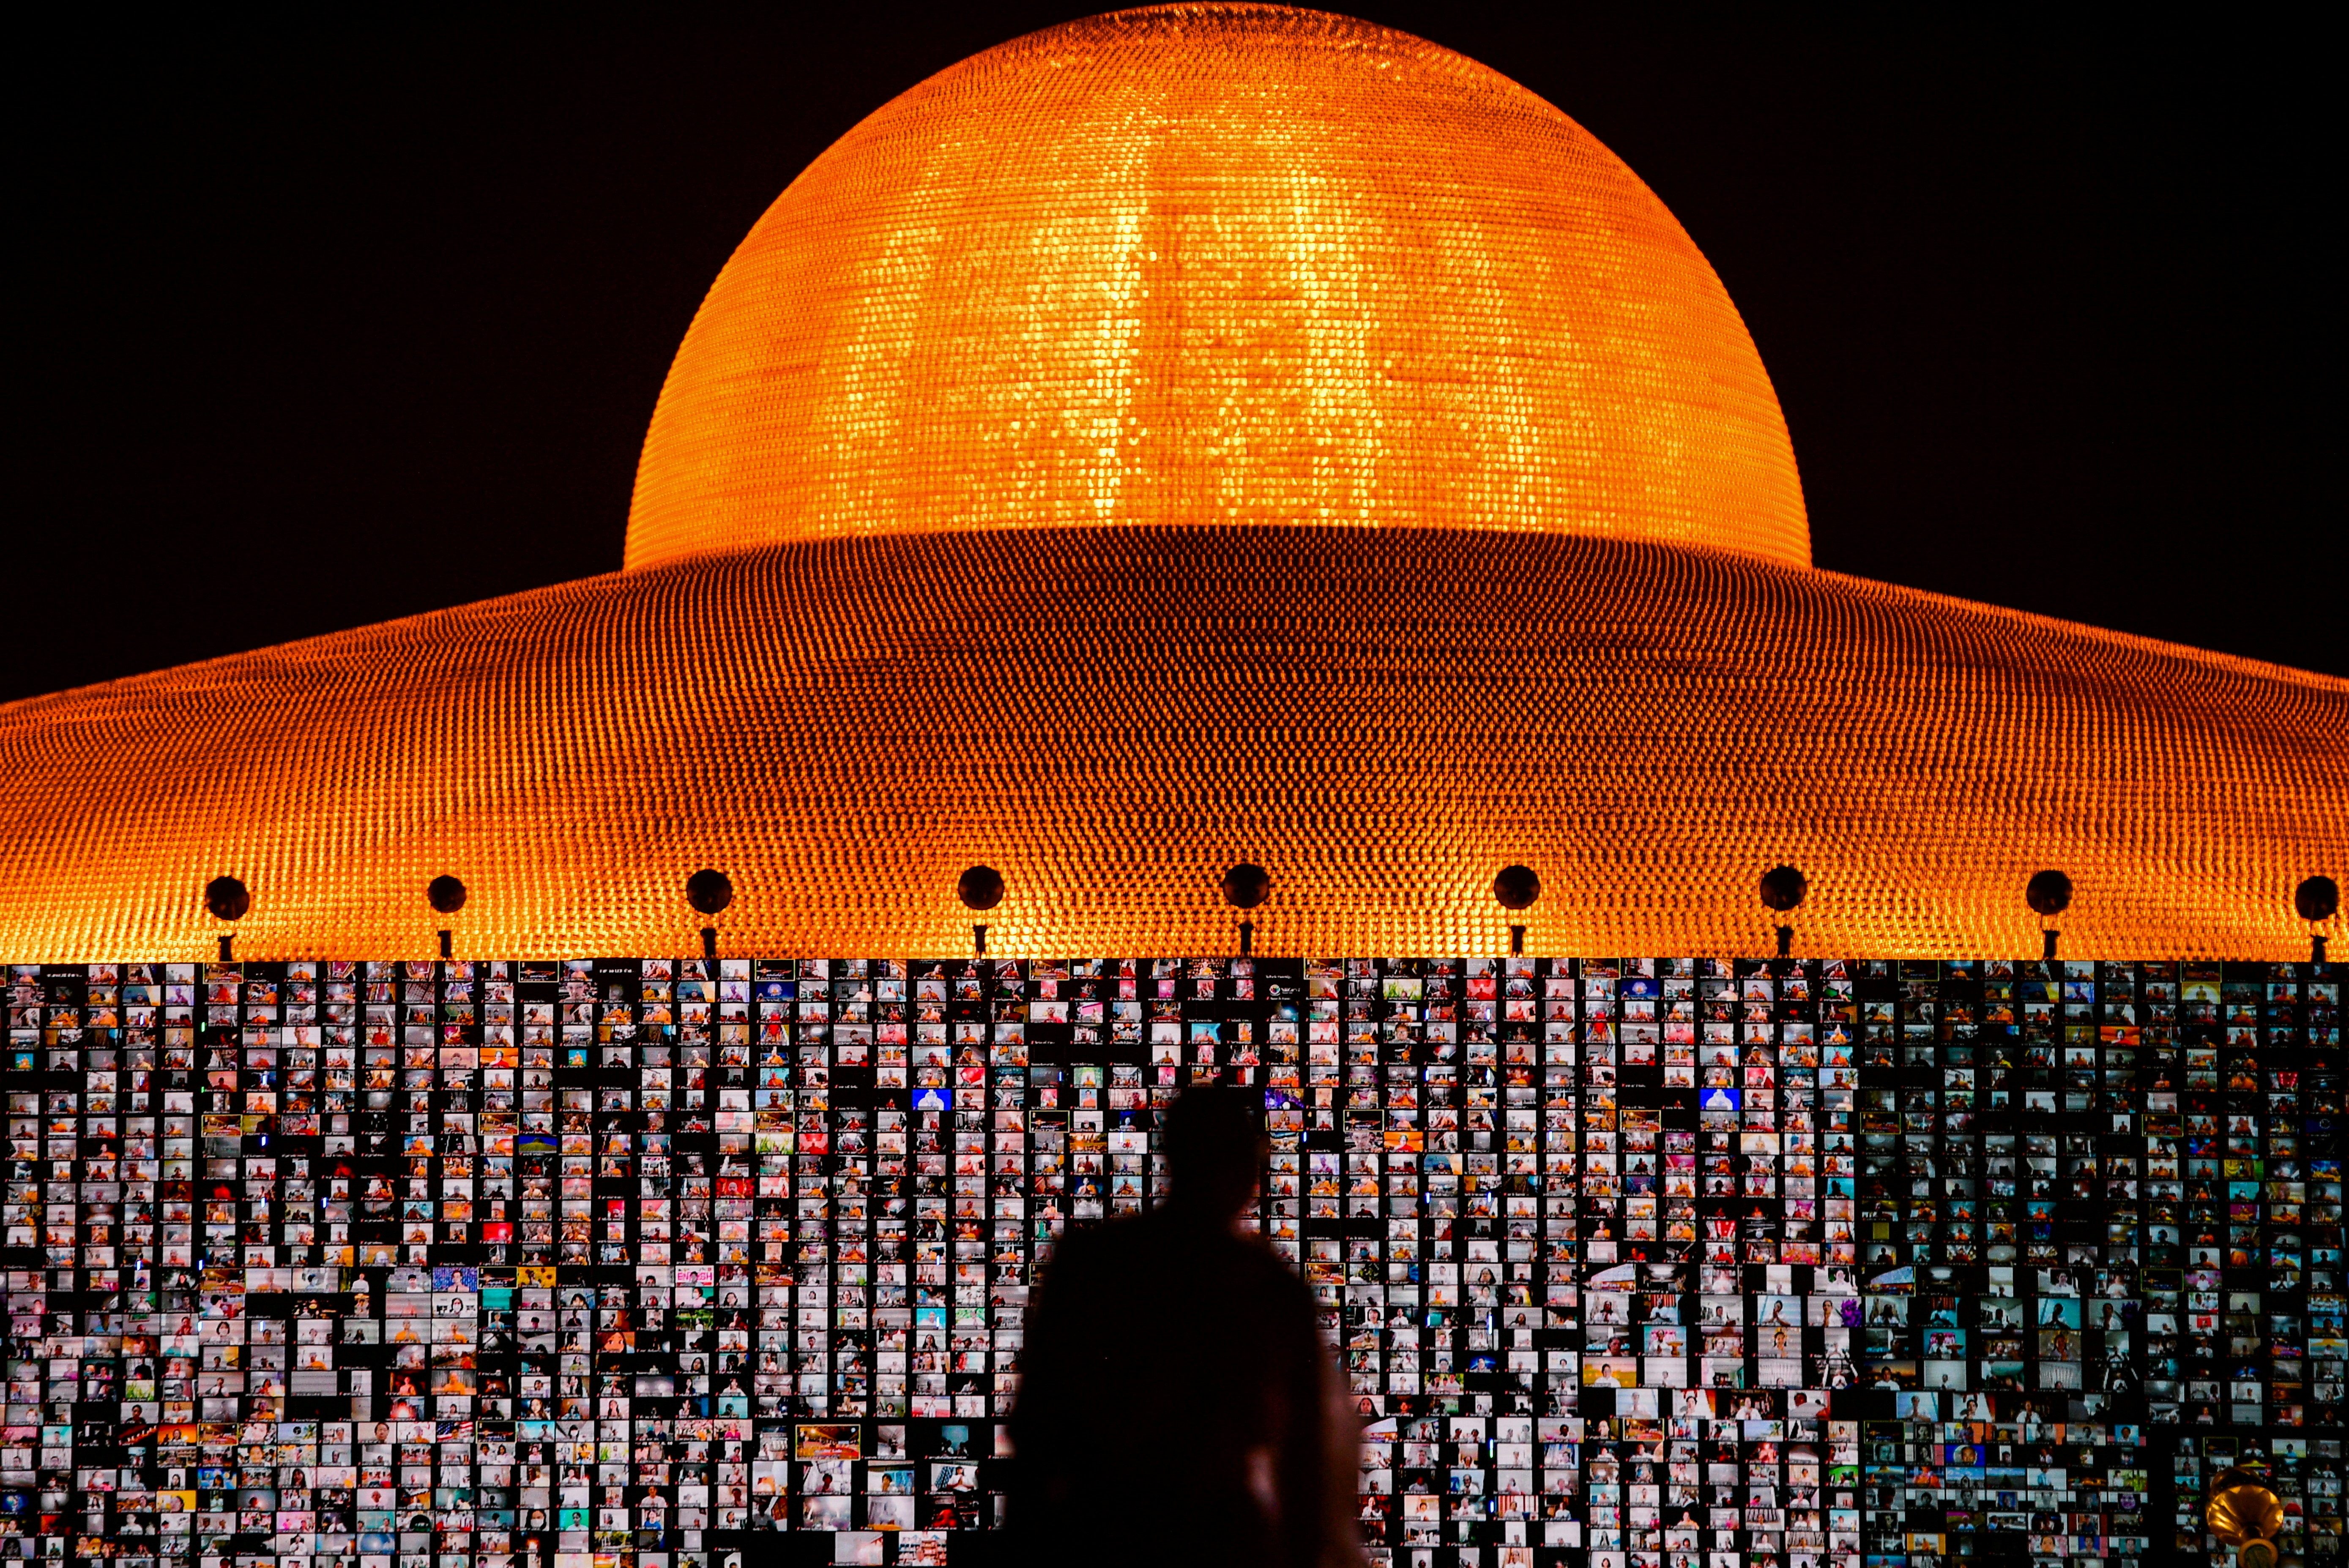 People pray as screens show devotees gathering via Zoom application during a ceremony to commemorate the Buddhist Lent Day at the Wat Phra Dhammakaya temple, amid the coronavirus disease (COVID-19) outbreaks, in Pathum Thani province, Thailand, July 24, 2021. REUTERS/Chalinee Thirasupa     TPX IMAGES OF THE DAY - RC2ZQO9KWXY2